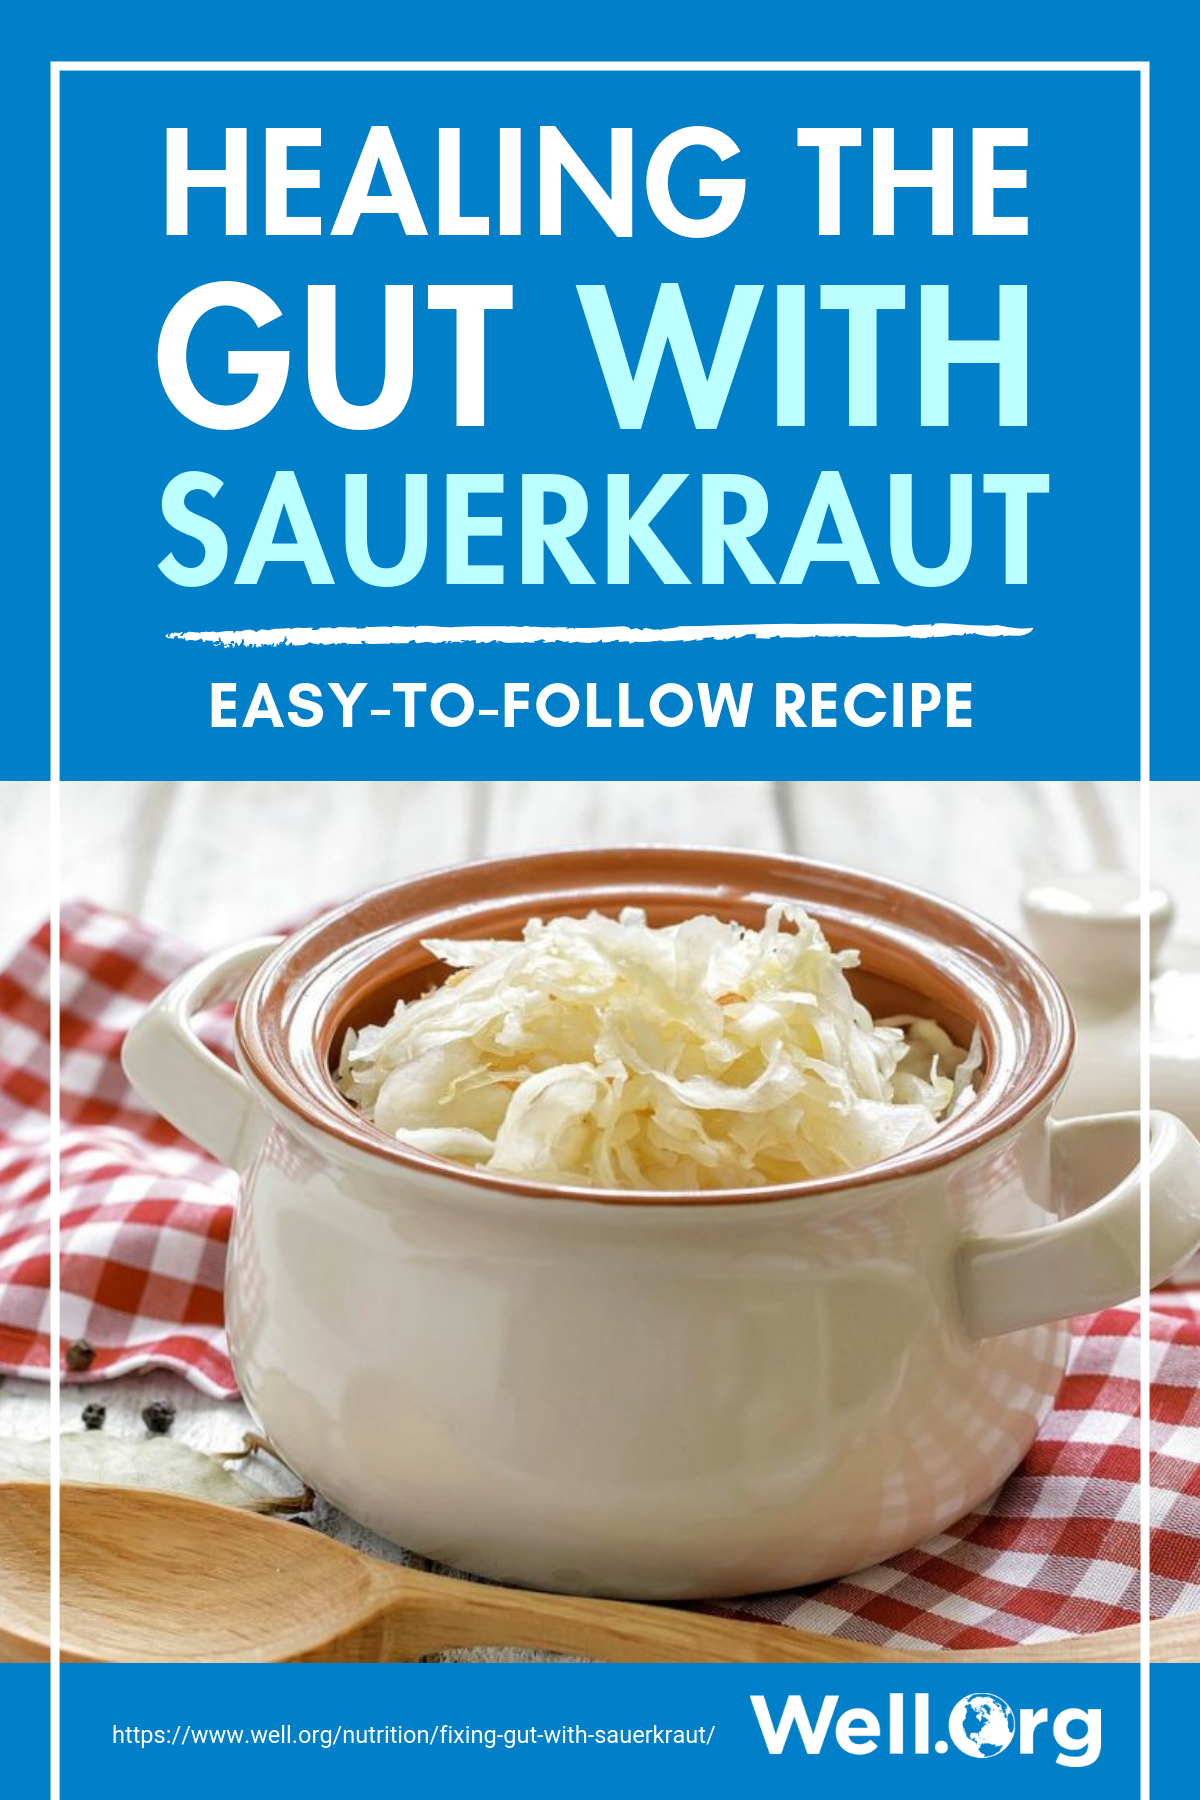 Healing The Gut With Sauerkraut (Easy-To-Follow Recipe) https://www.well.org/nutrition/fixing-gut-with-sauerkraut/